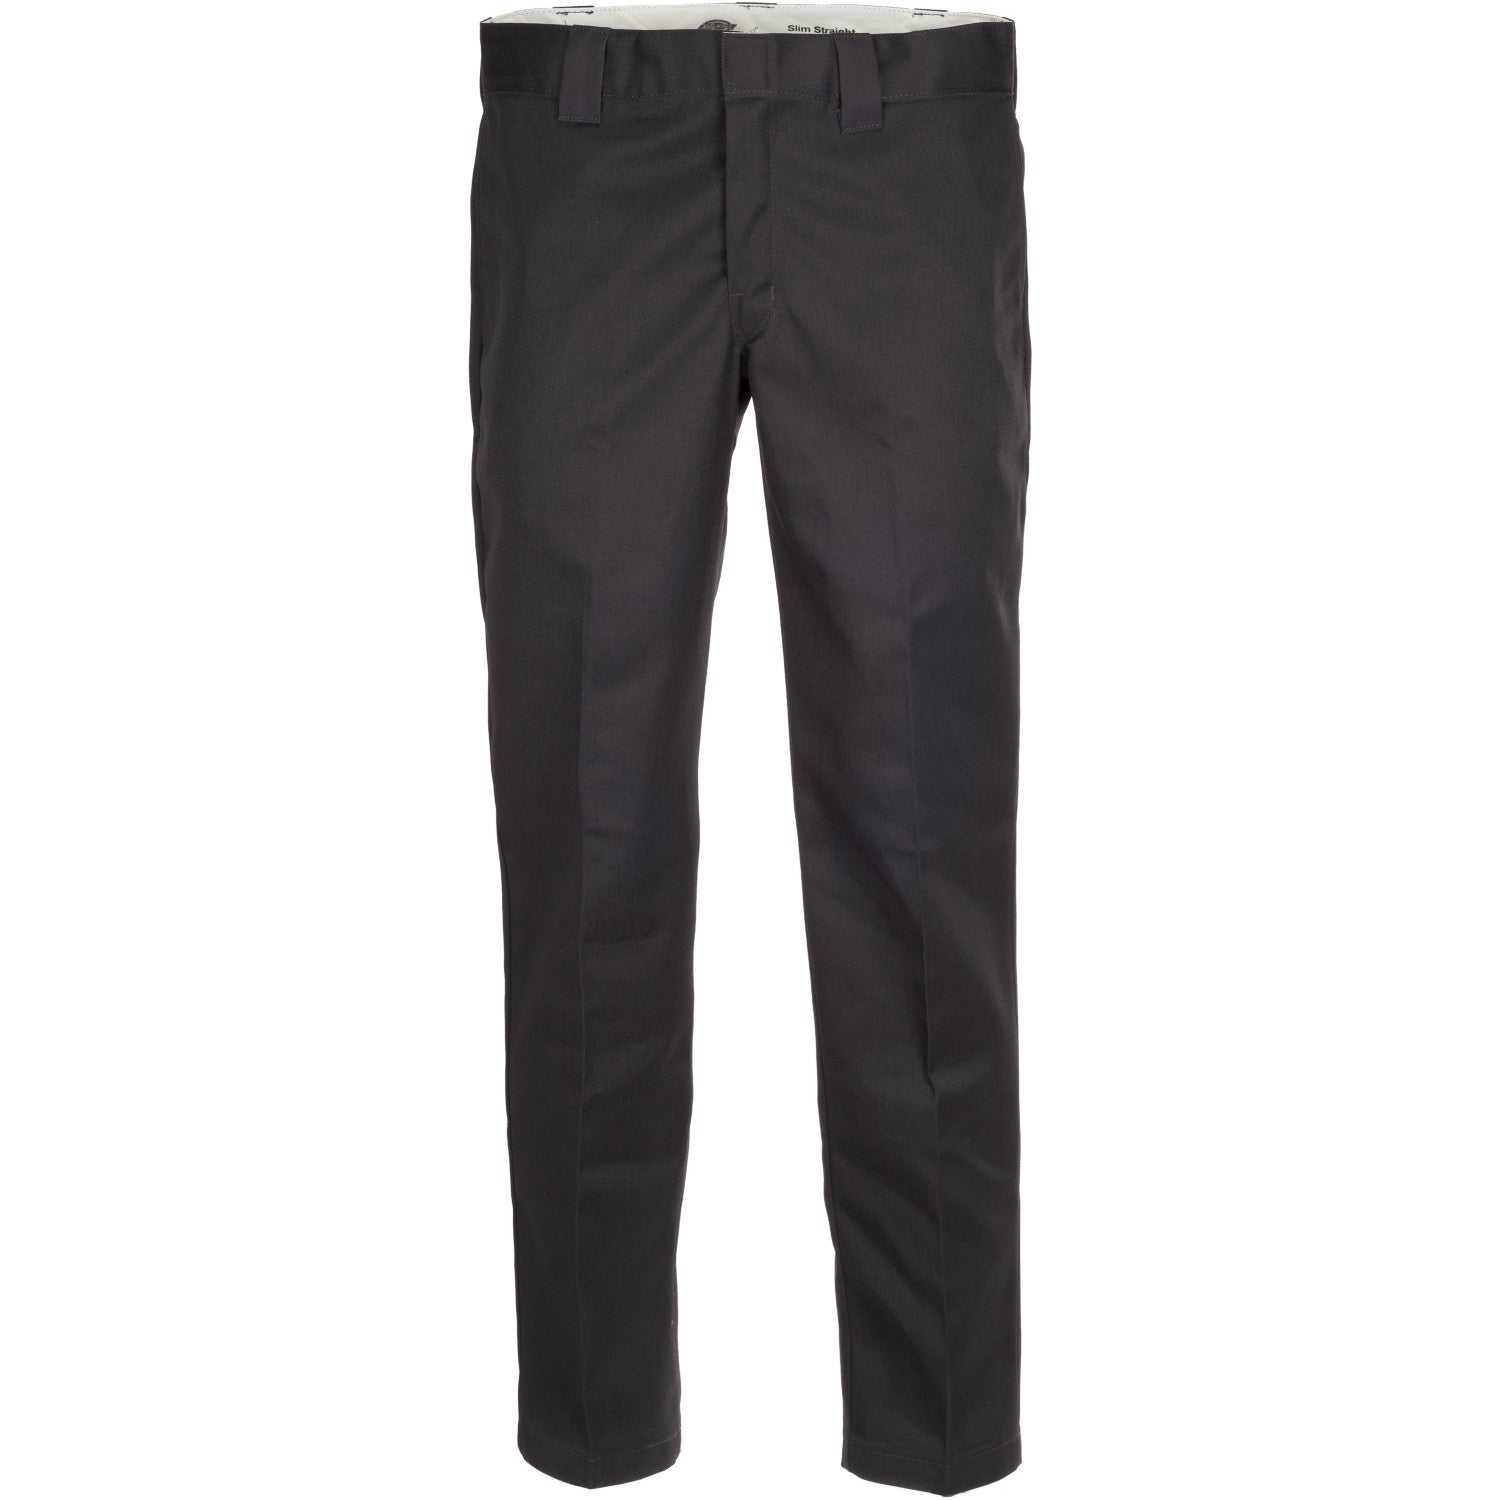 Dickies WP872 Slim Fit Work Chino Pant - Black